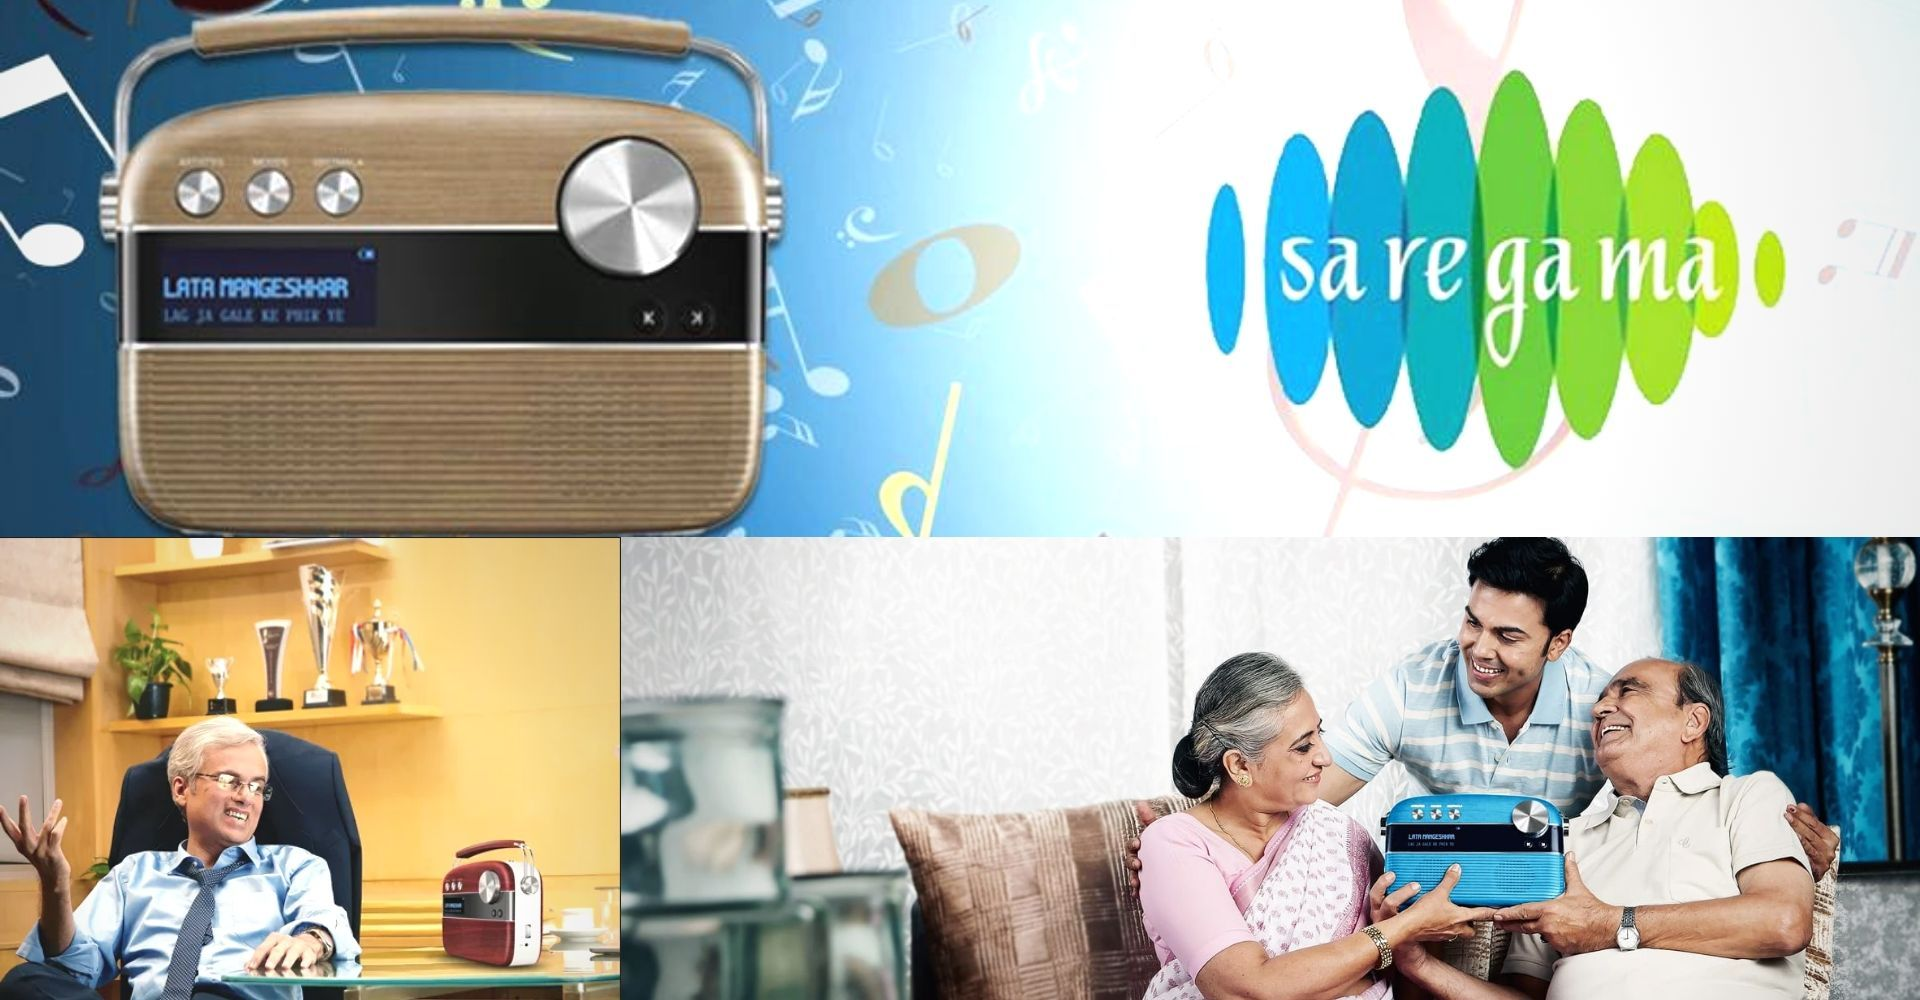 Saregama Carvaan Music Player with 5000 Preloaded Songs | Give Review and Specification